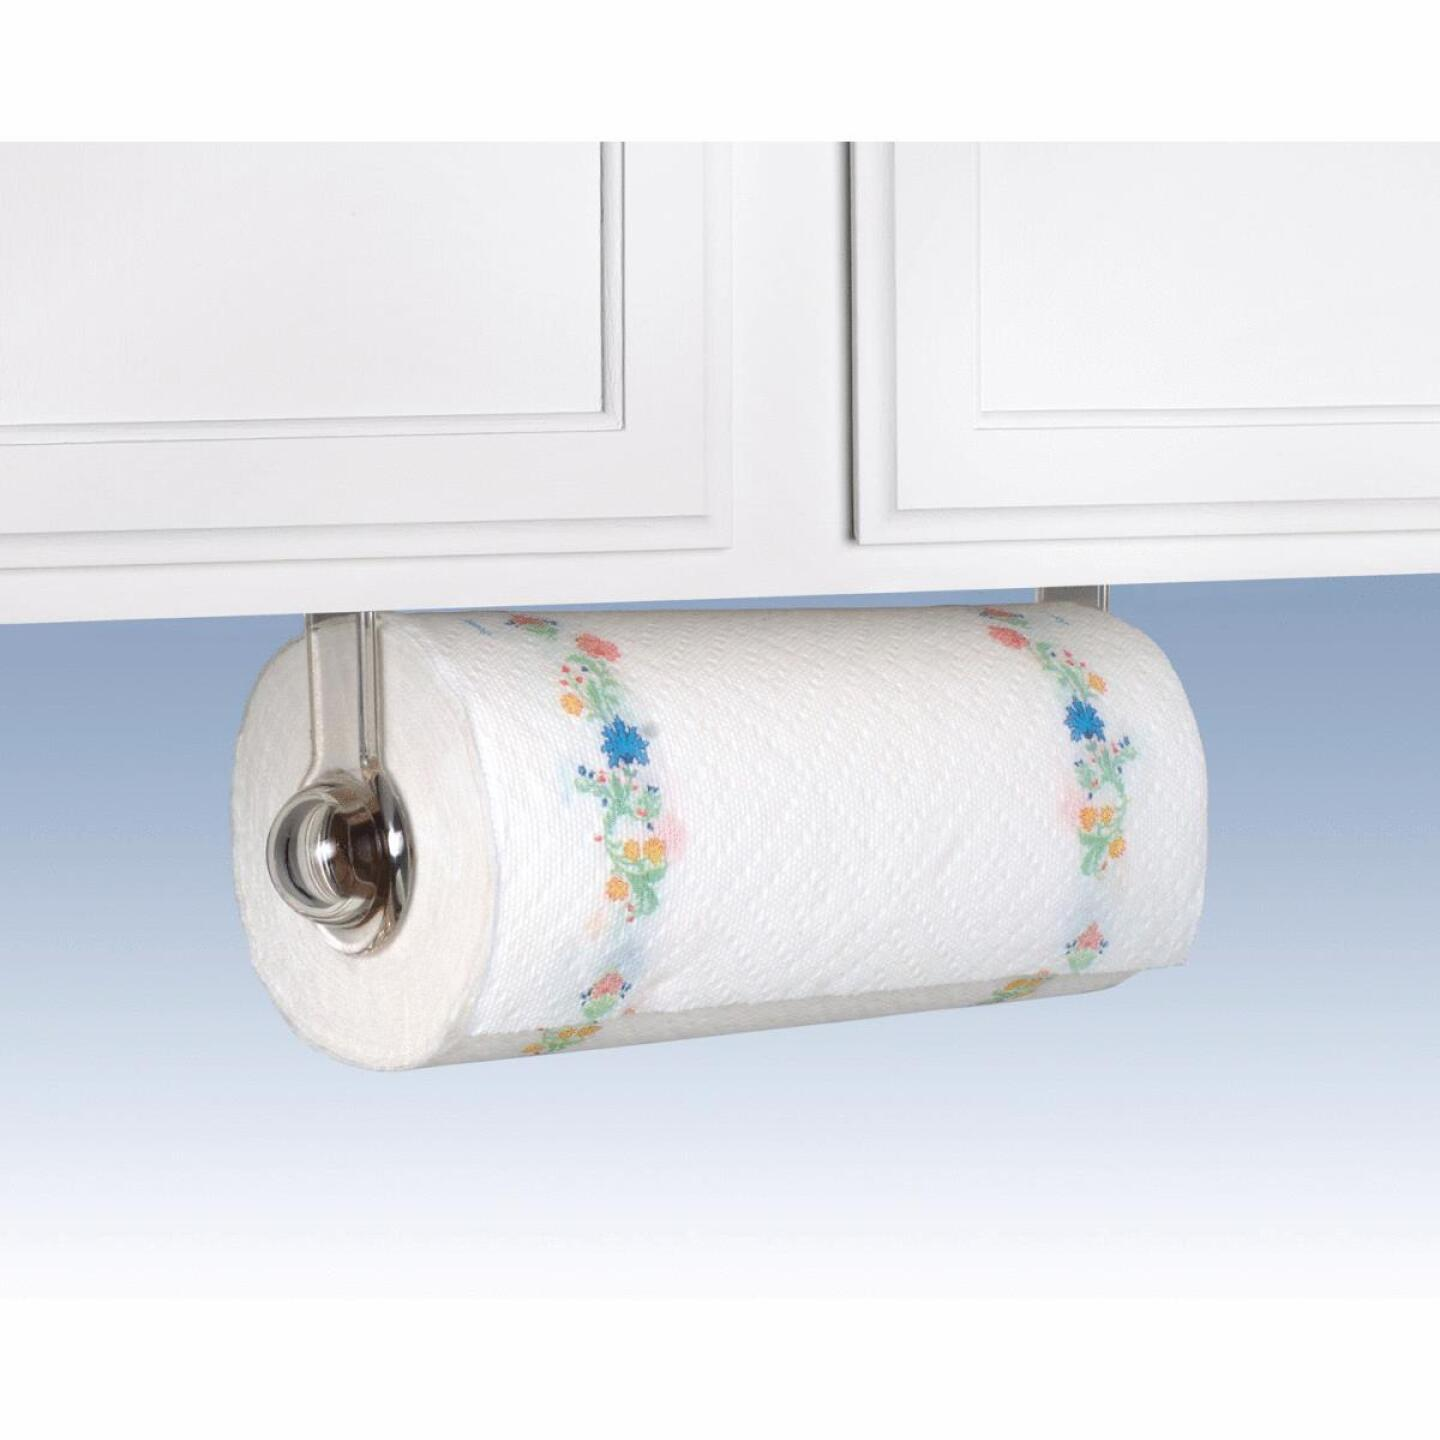 Spectrum Clear Plastic Wall or Cabinet Paper Towel Holder Image 1